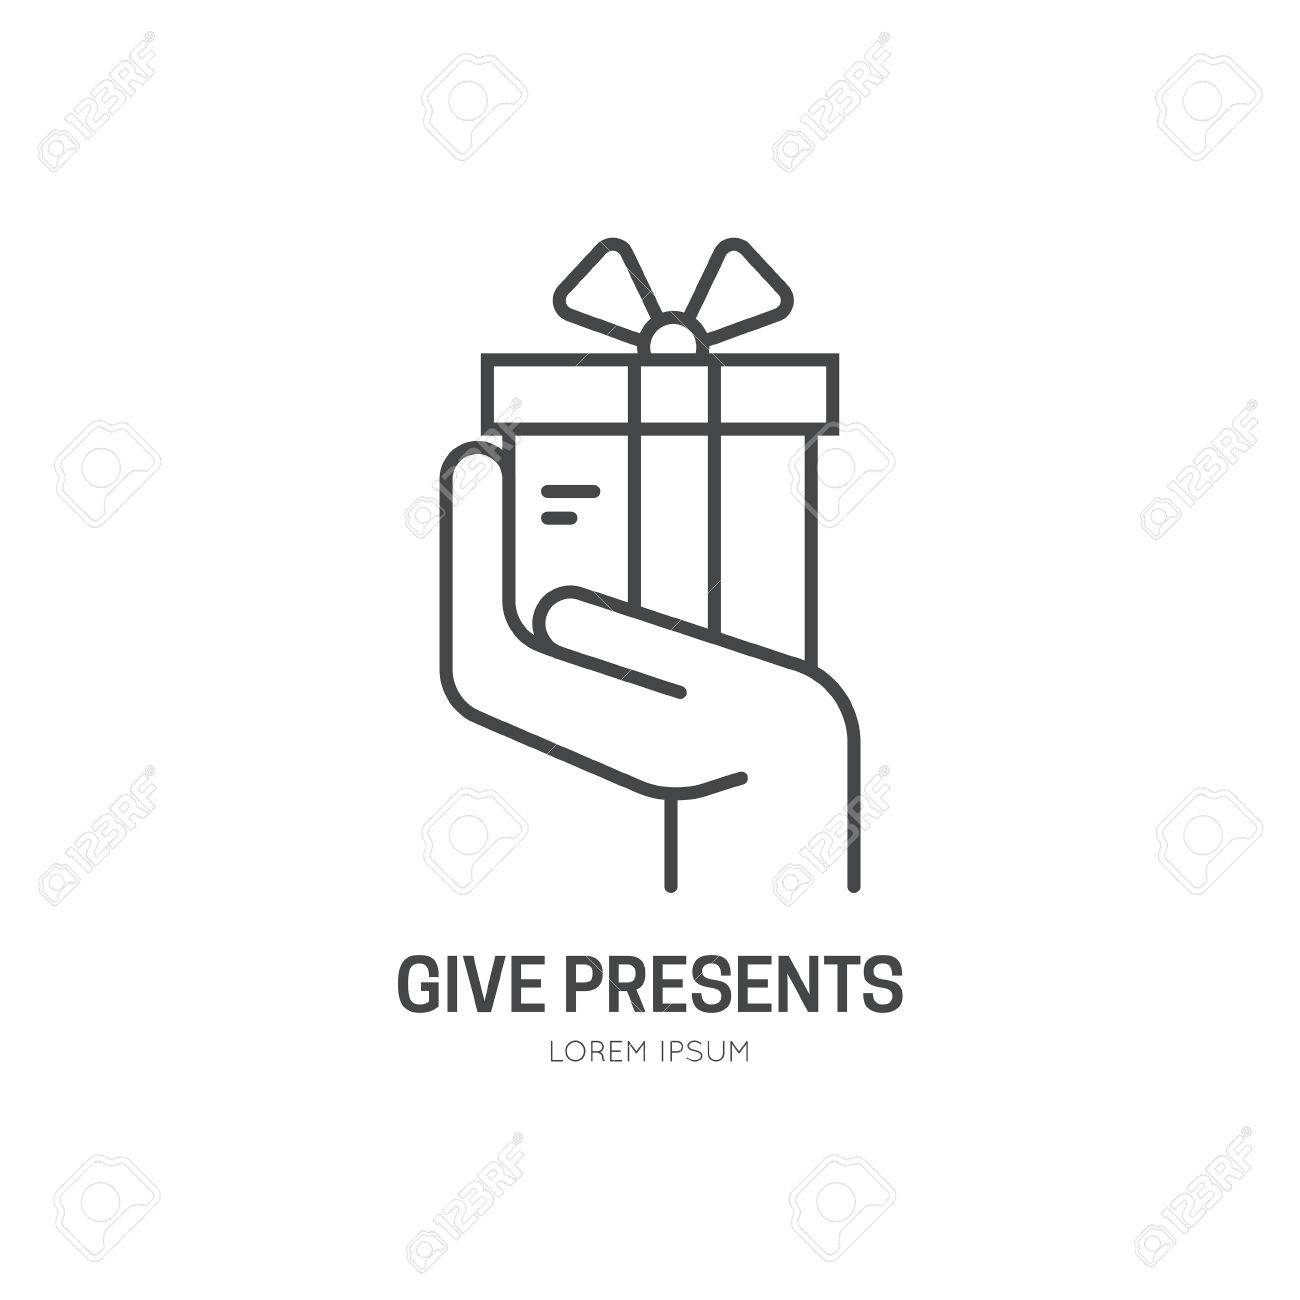 Hand holding a present symbol for charity or donation event hand holding a present symbol for charity or donation event stock vector 53115839 biocorpaavc